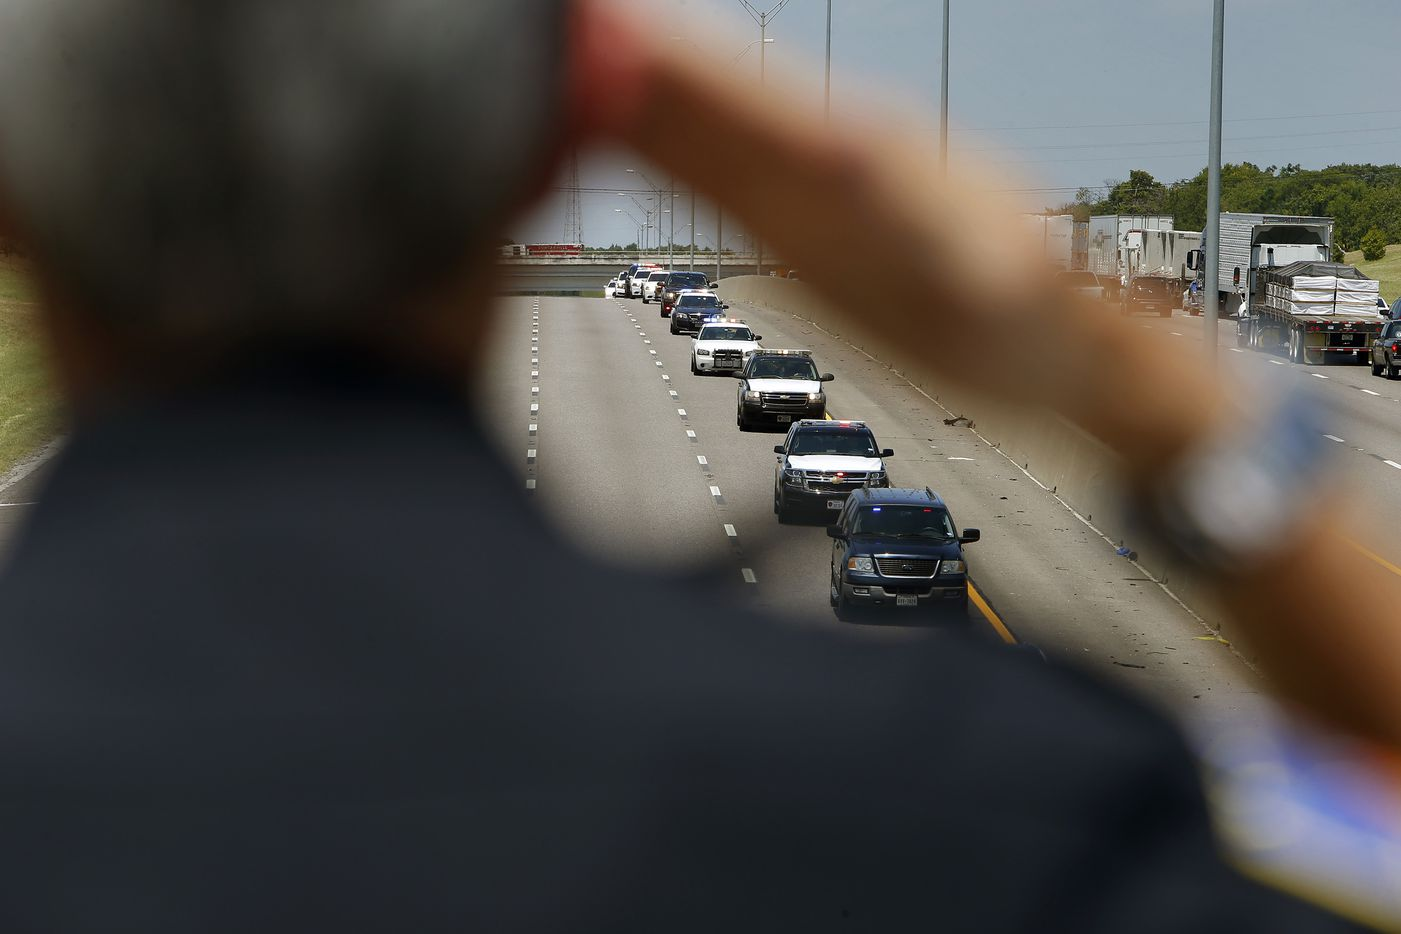 Duncanville police officers salute the funeral procession for DART Officer Brent Thompson on Interstate 20 in Duncanville, Texas on Wednesday, July 13, 2016. Thompson and four other officers were killed during an attack during a peaceful Black Lives Matter protest on July 7, 2016.